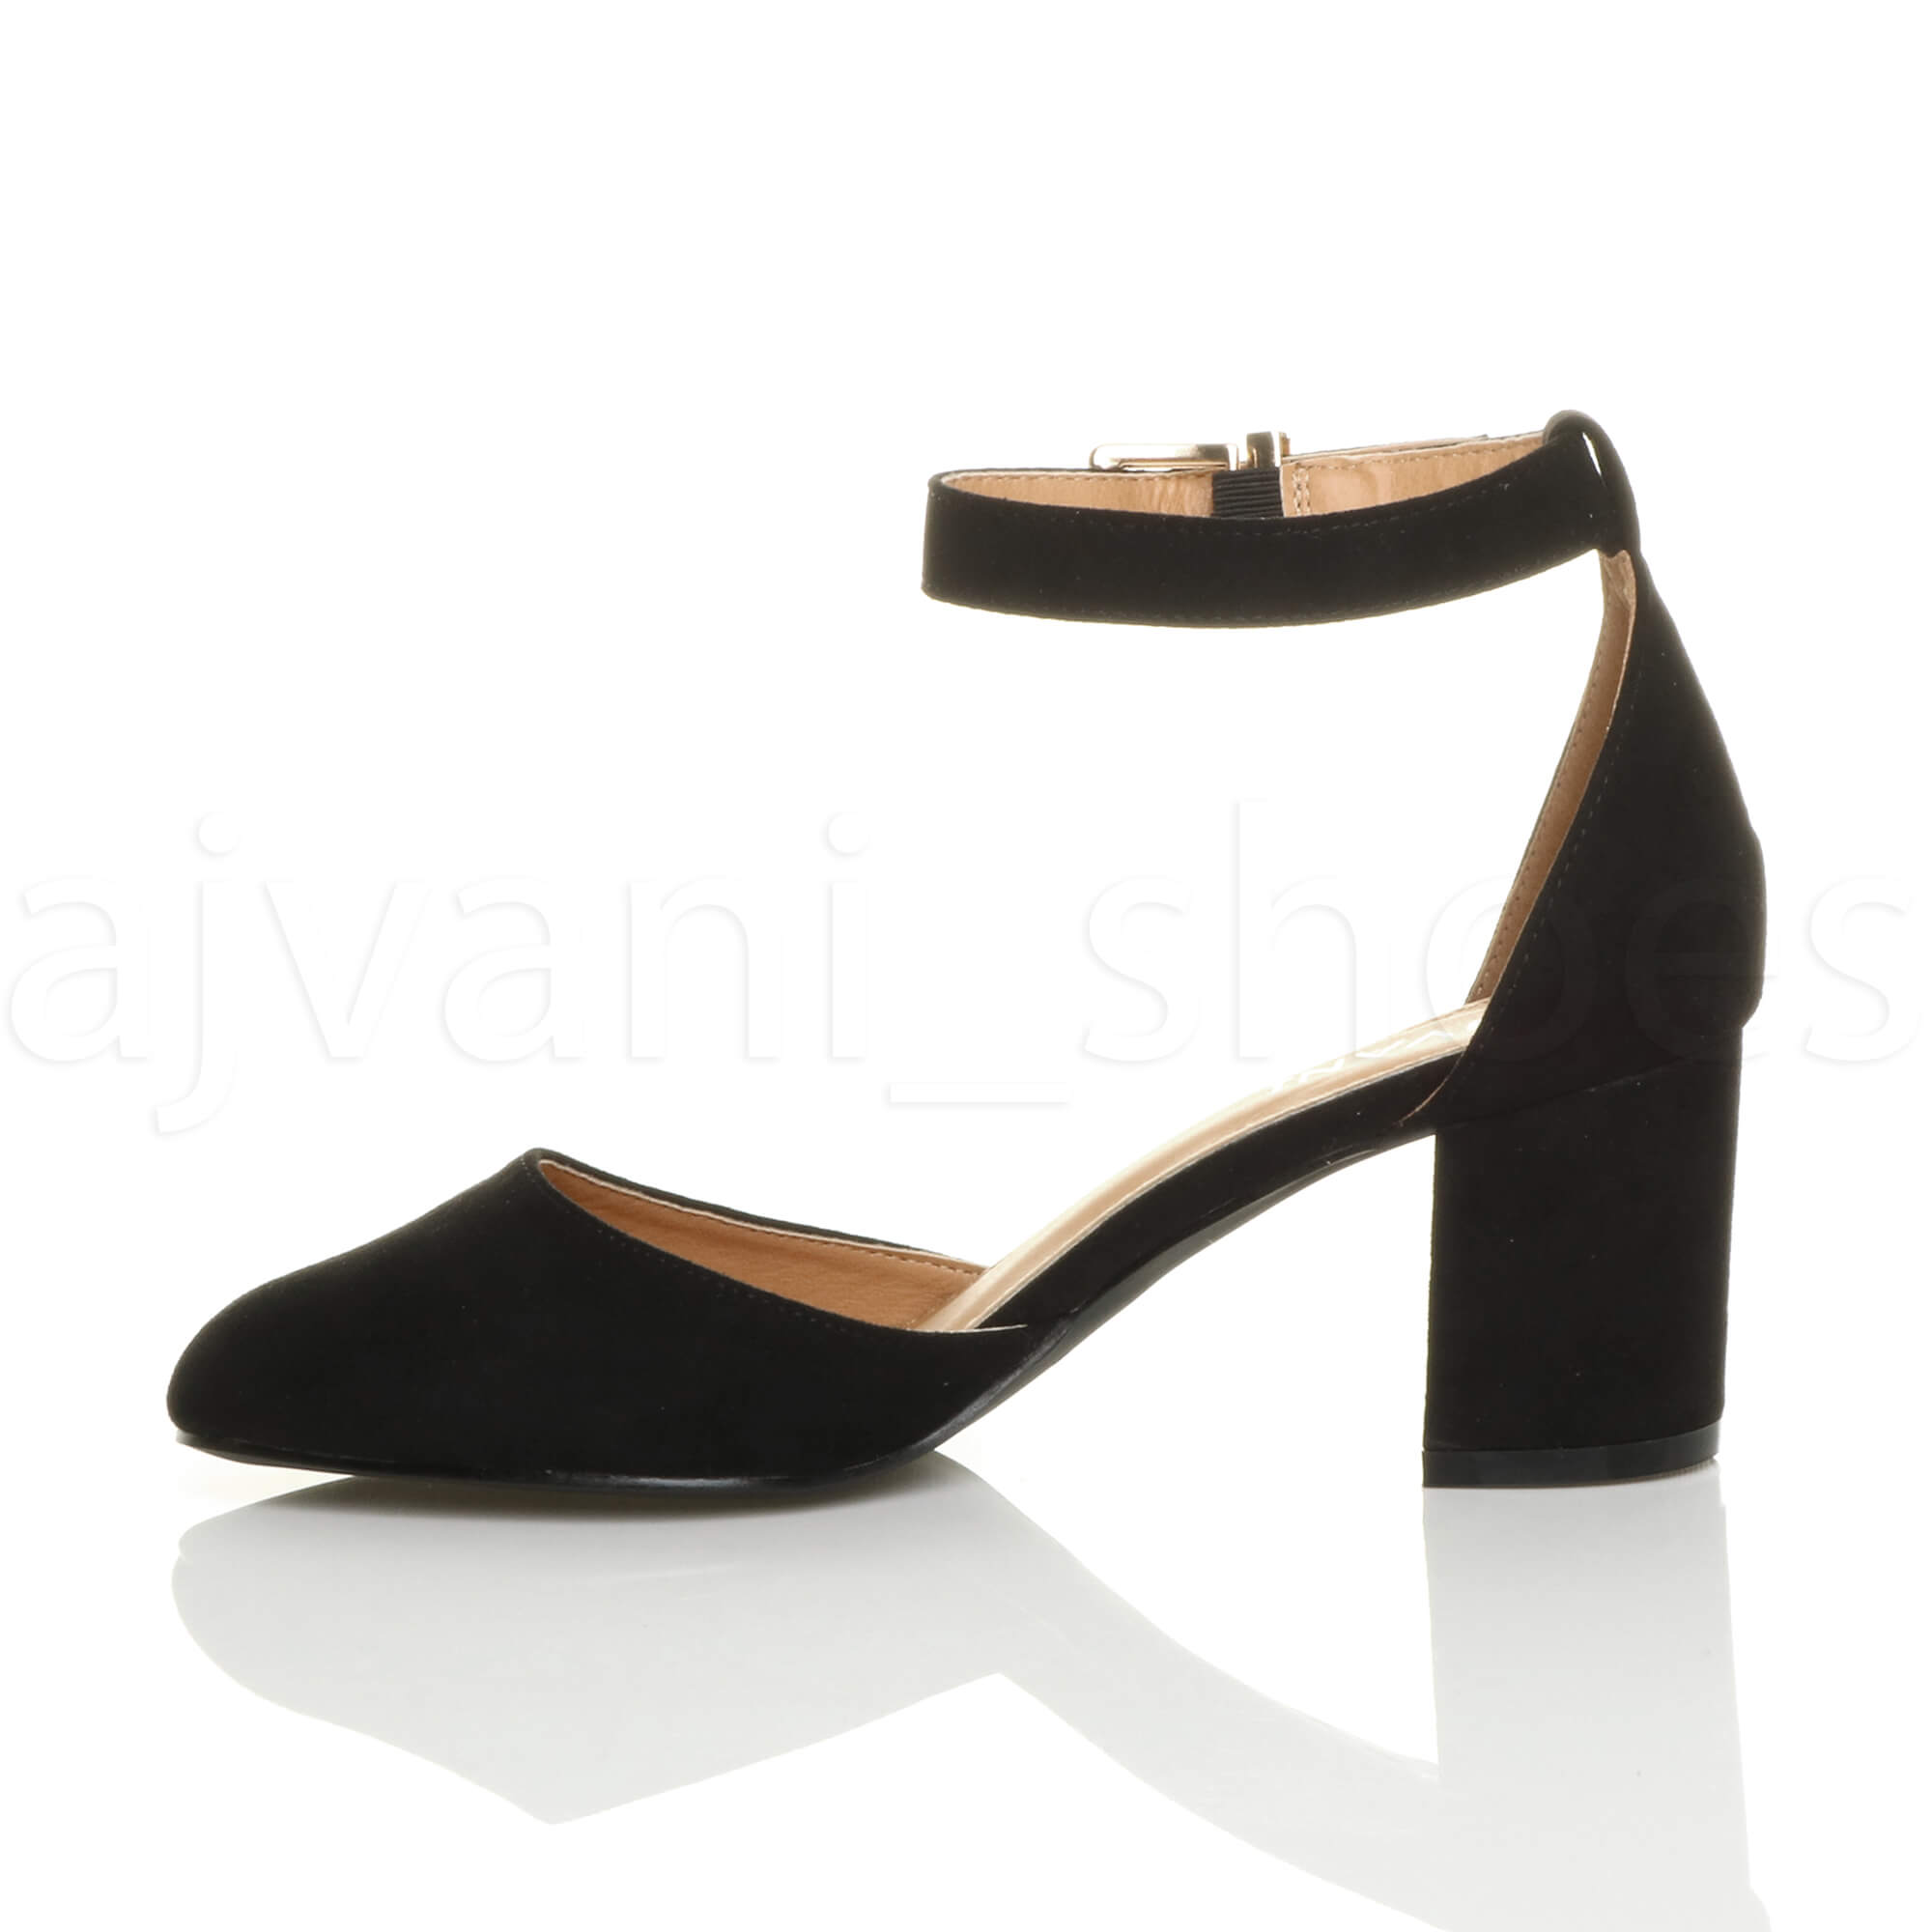 WOMENS-LADIES-LOW-MID-BLOCK-HEEL-ANKLE-STRAP-MARY-JANE-COURT-SHOES-SANDALS-SIZE thumbnail 20